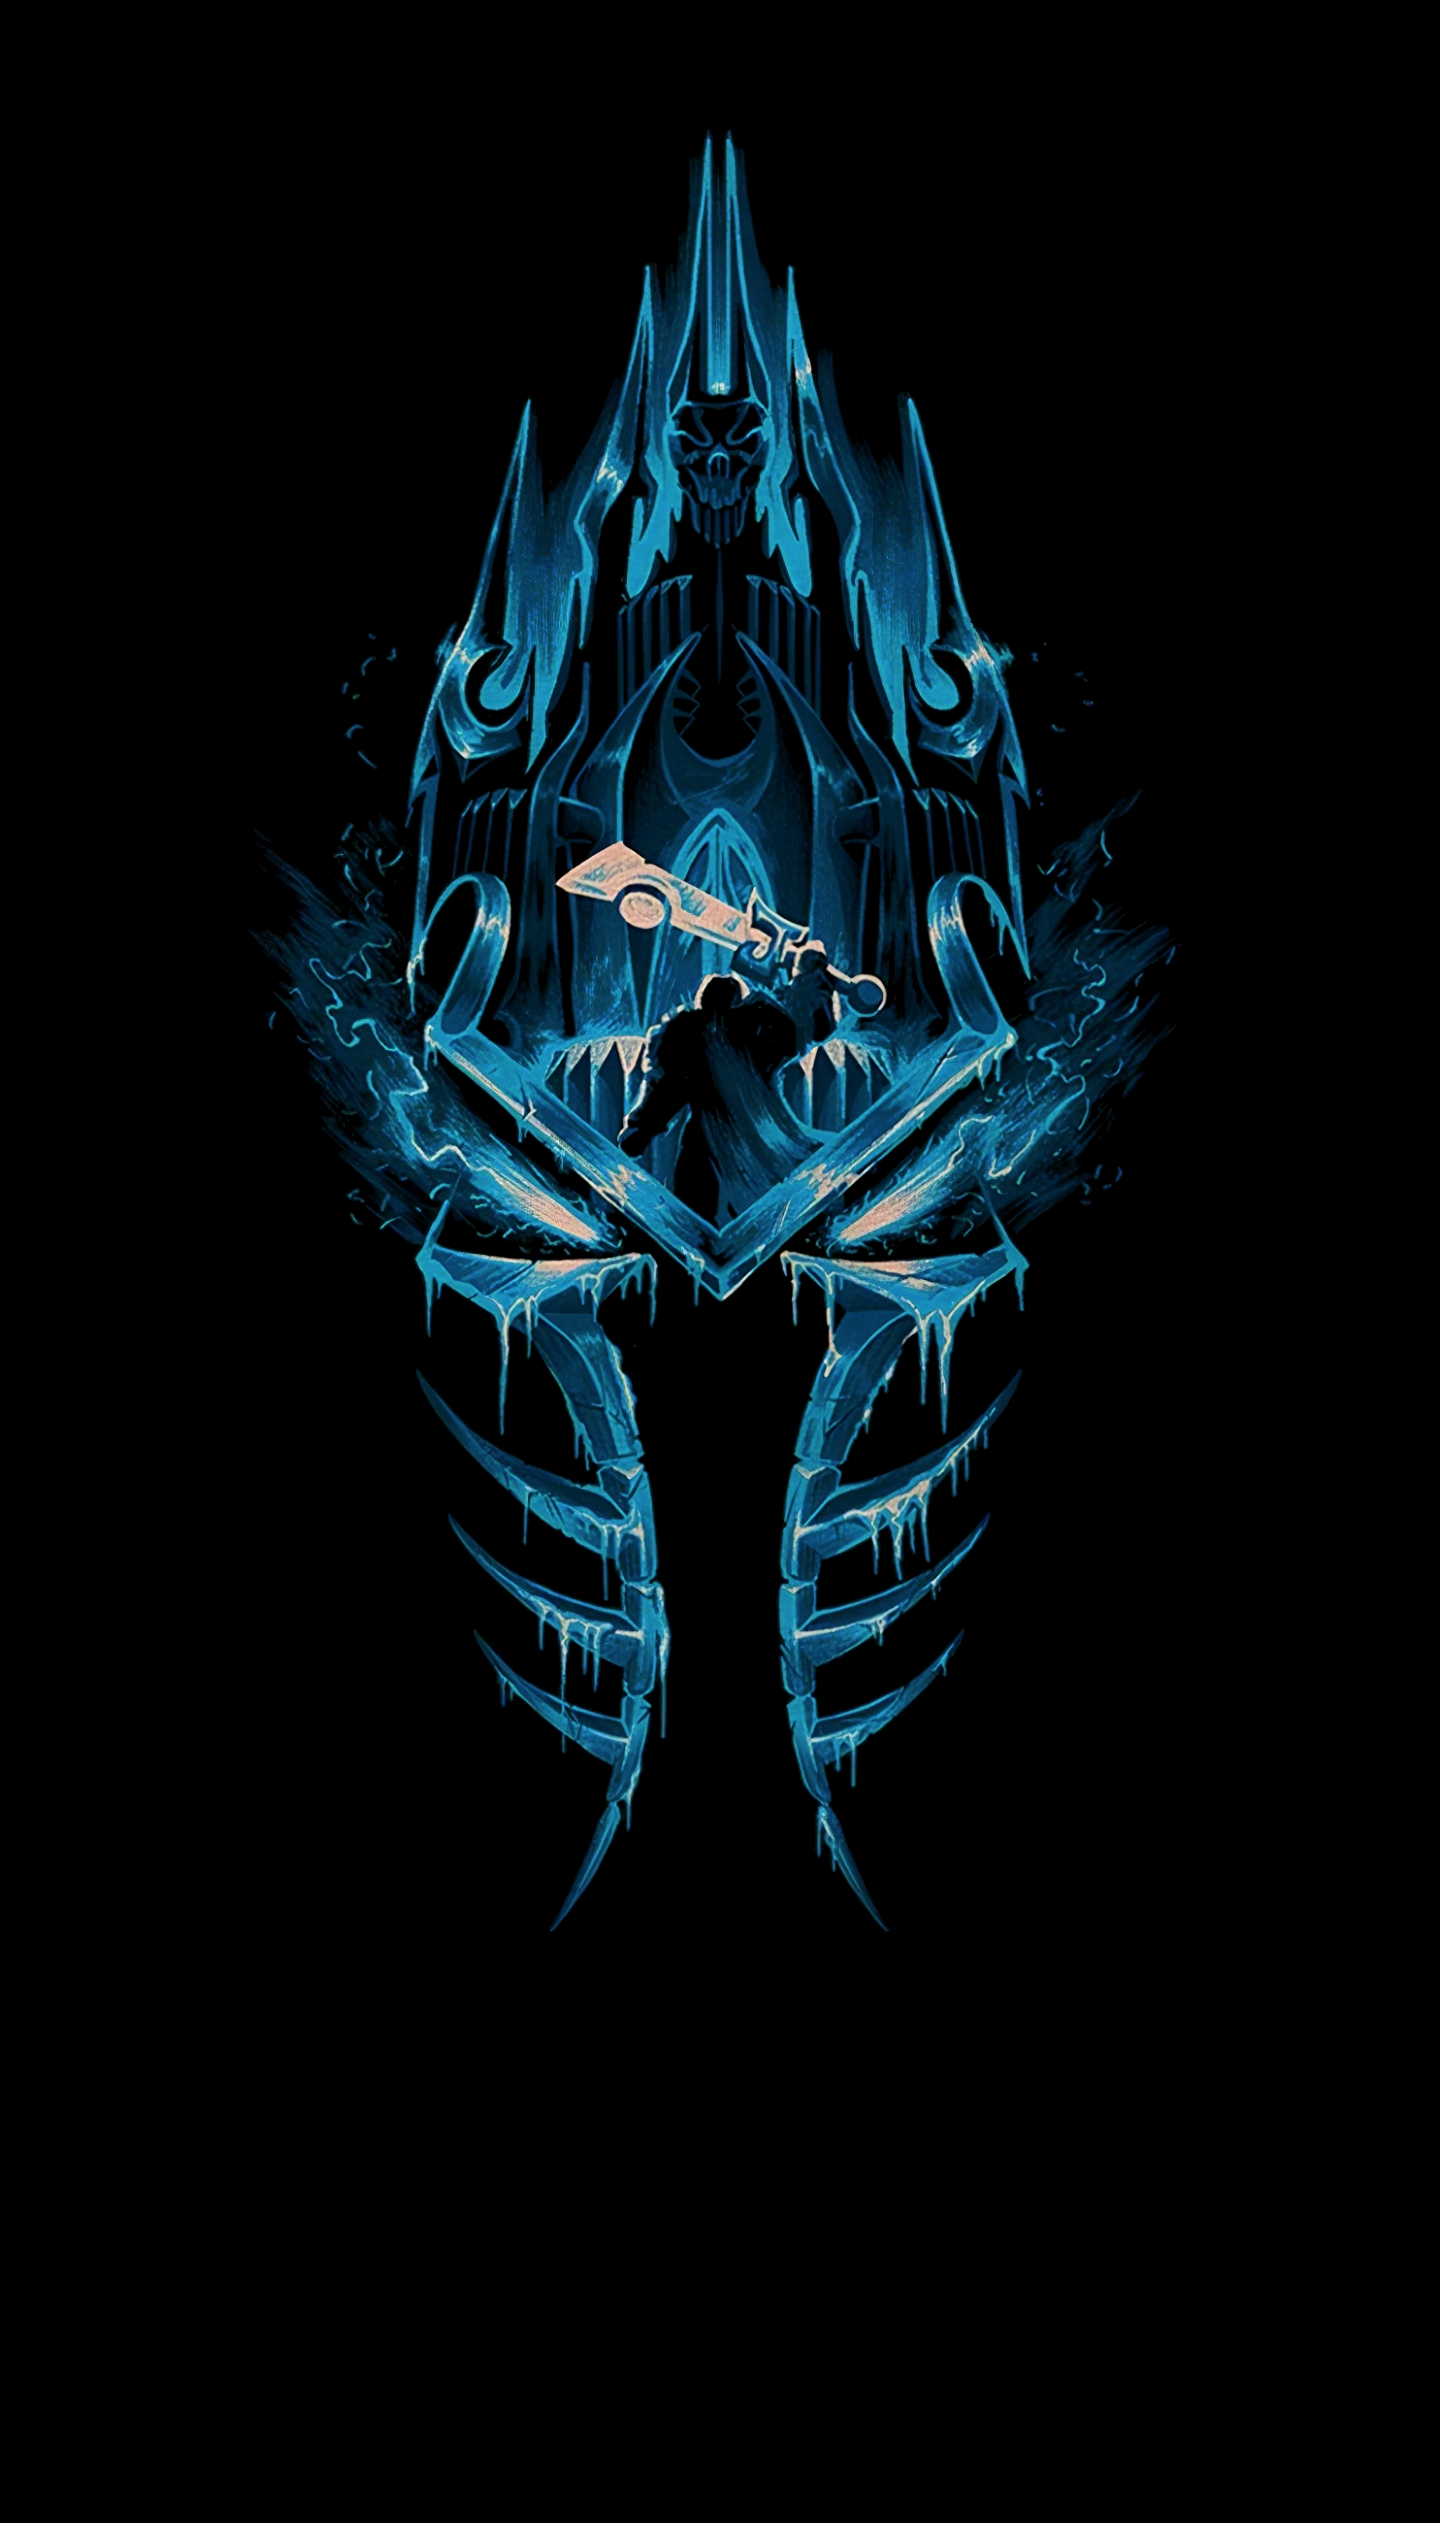 Wrath of the Lich King (1440x2523)